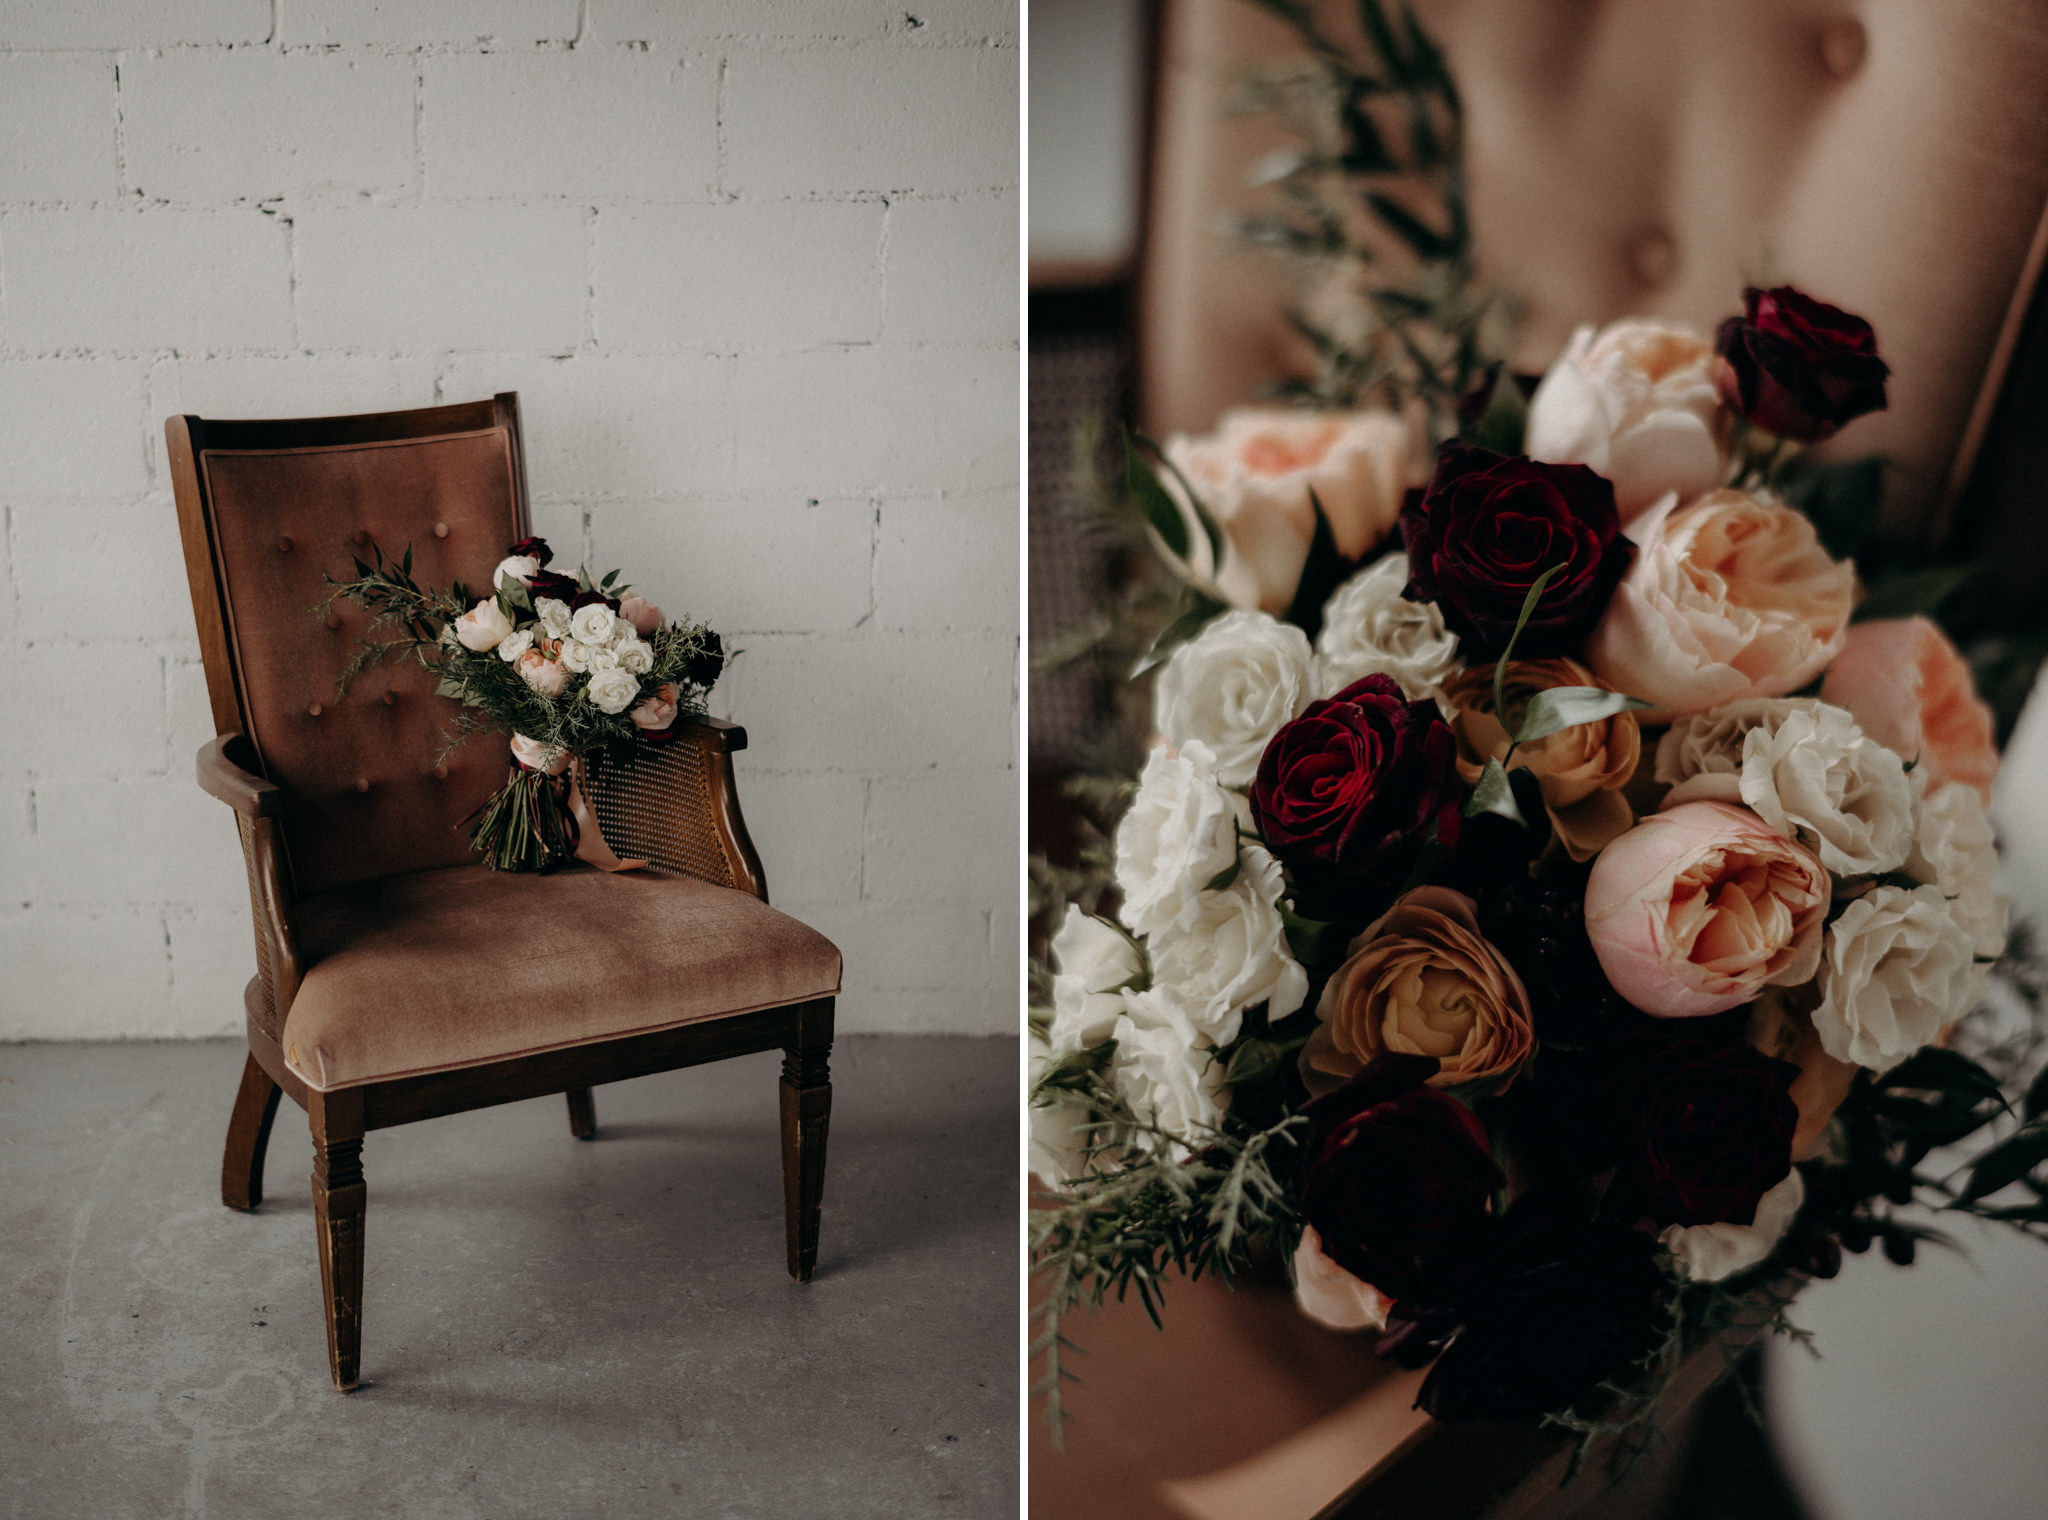 blush wedding bouquet on velvet chair